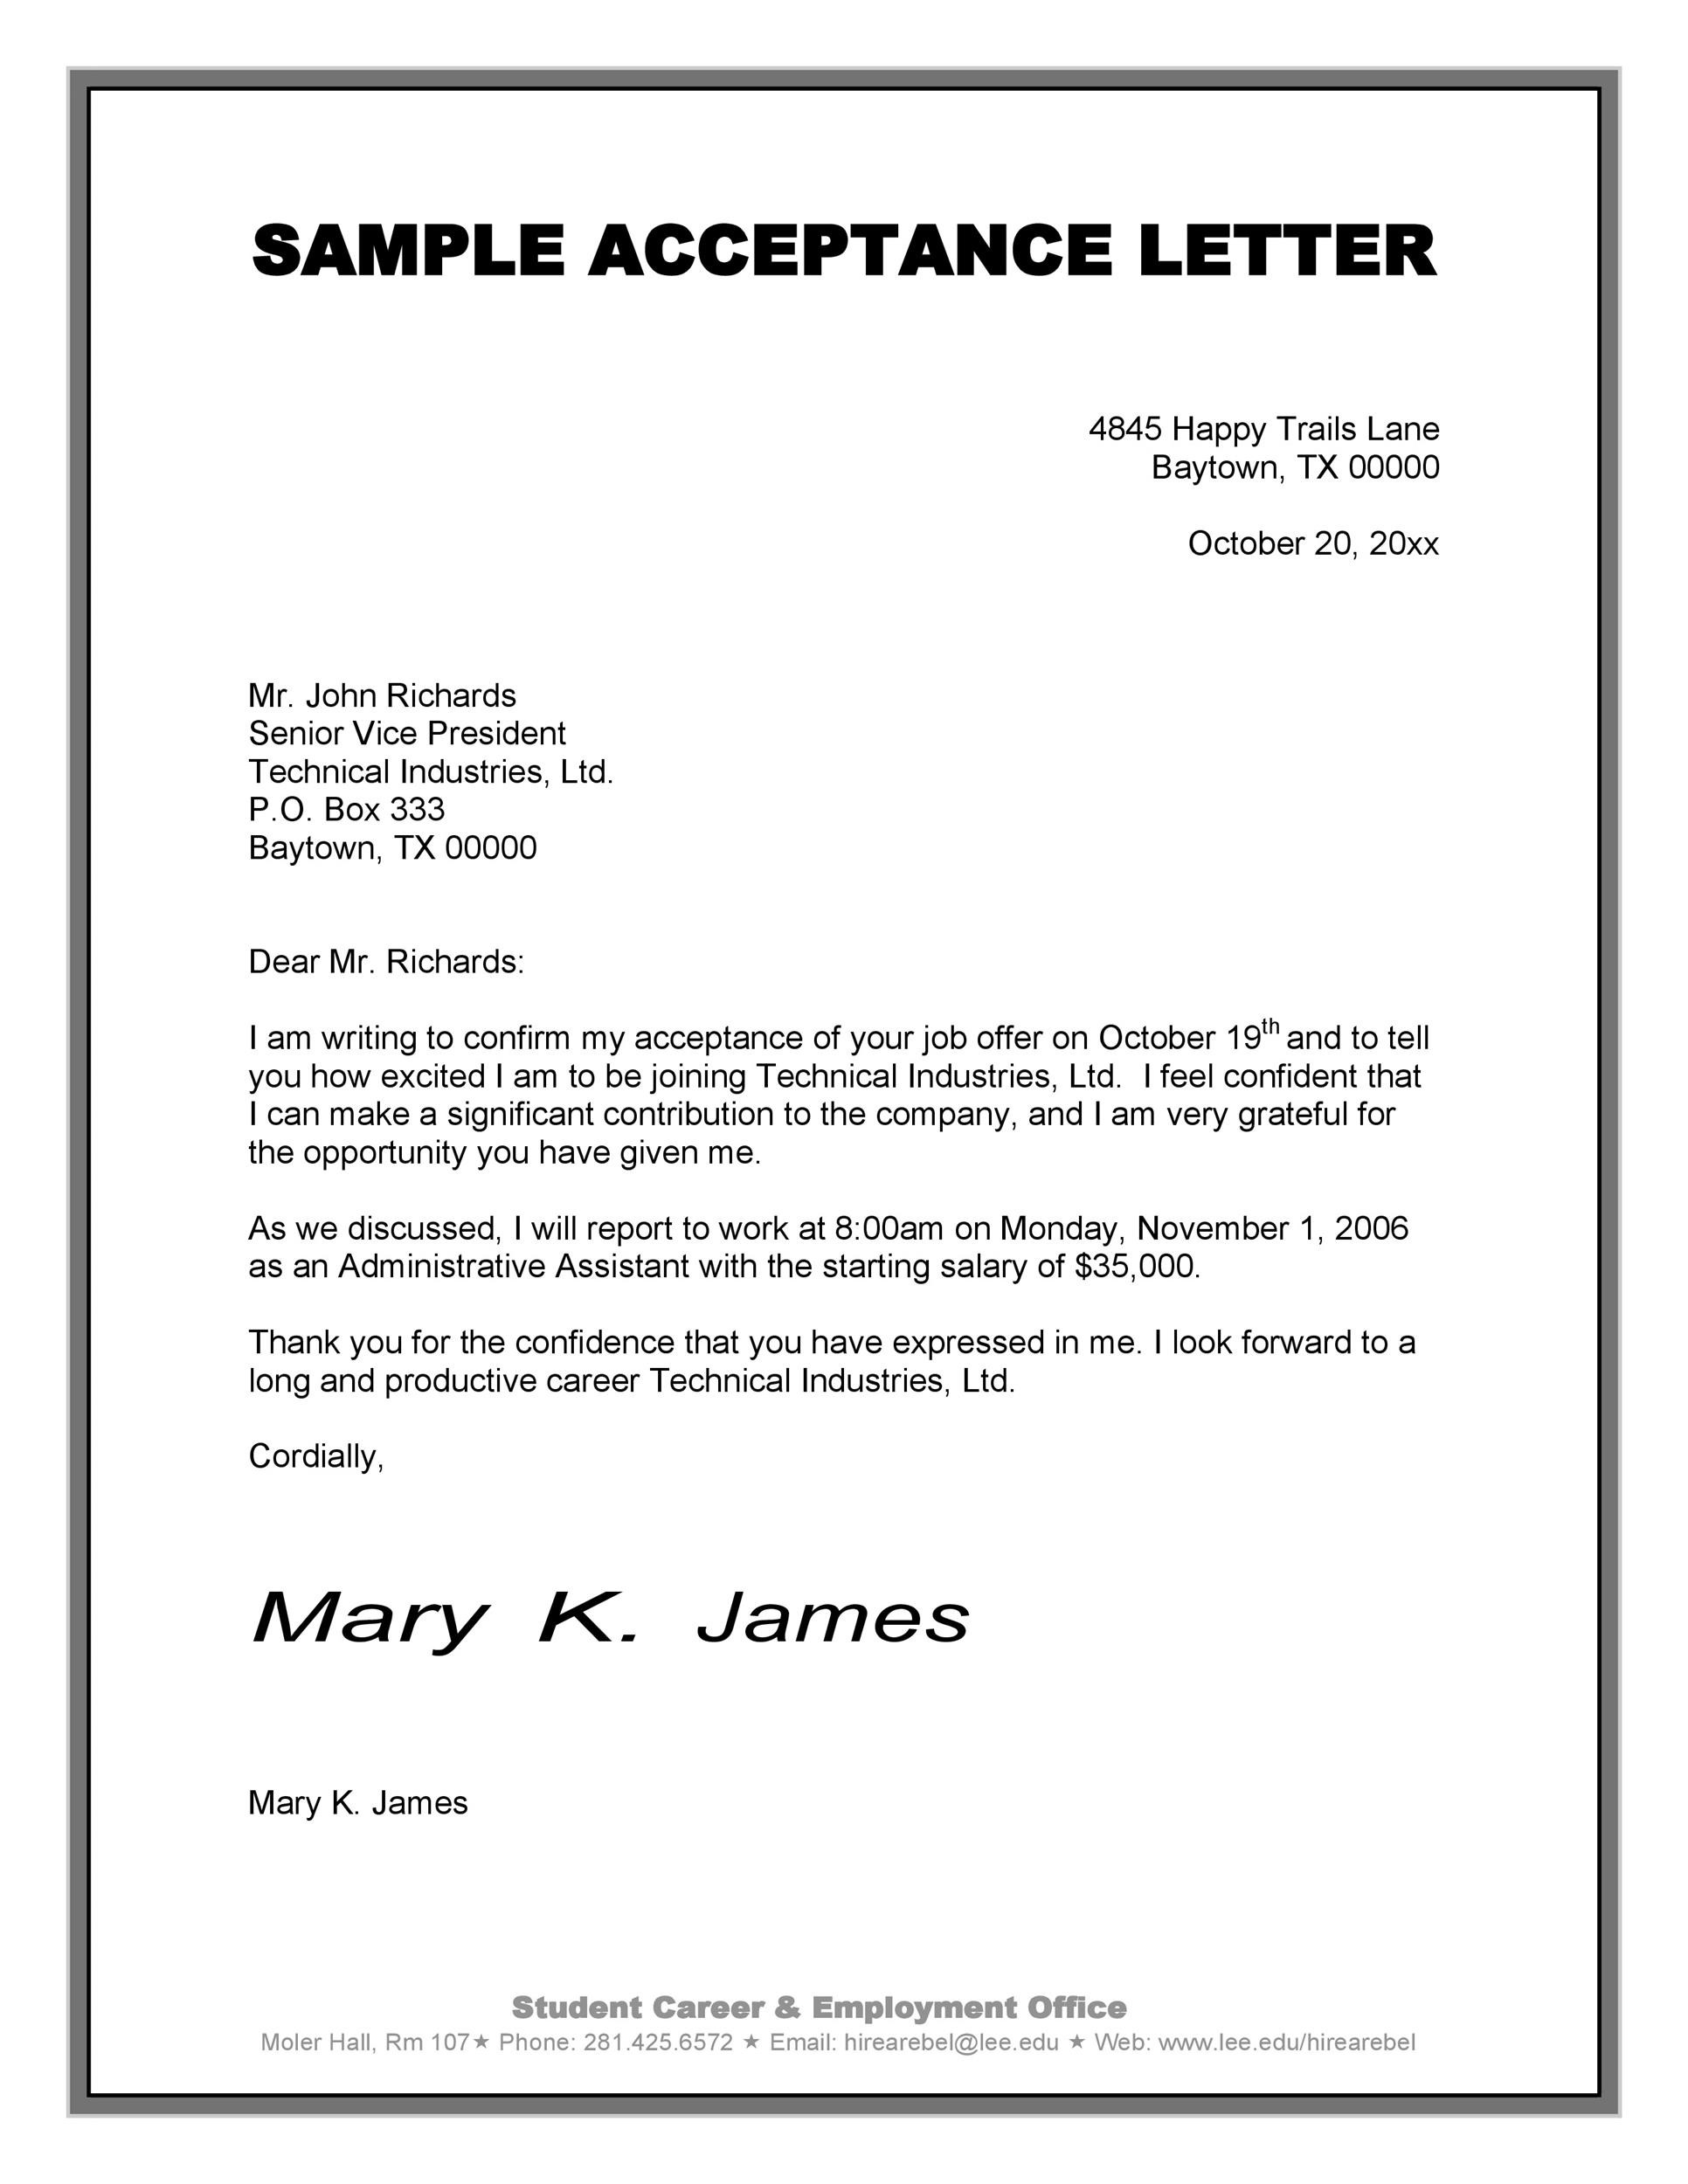 40 Professional Job Offer Acceptance Letter & Email Templates